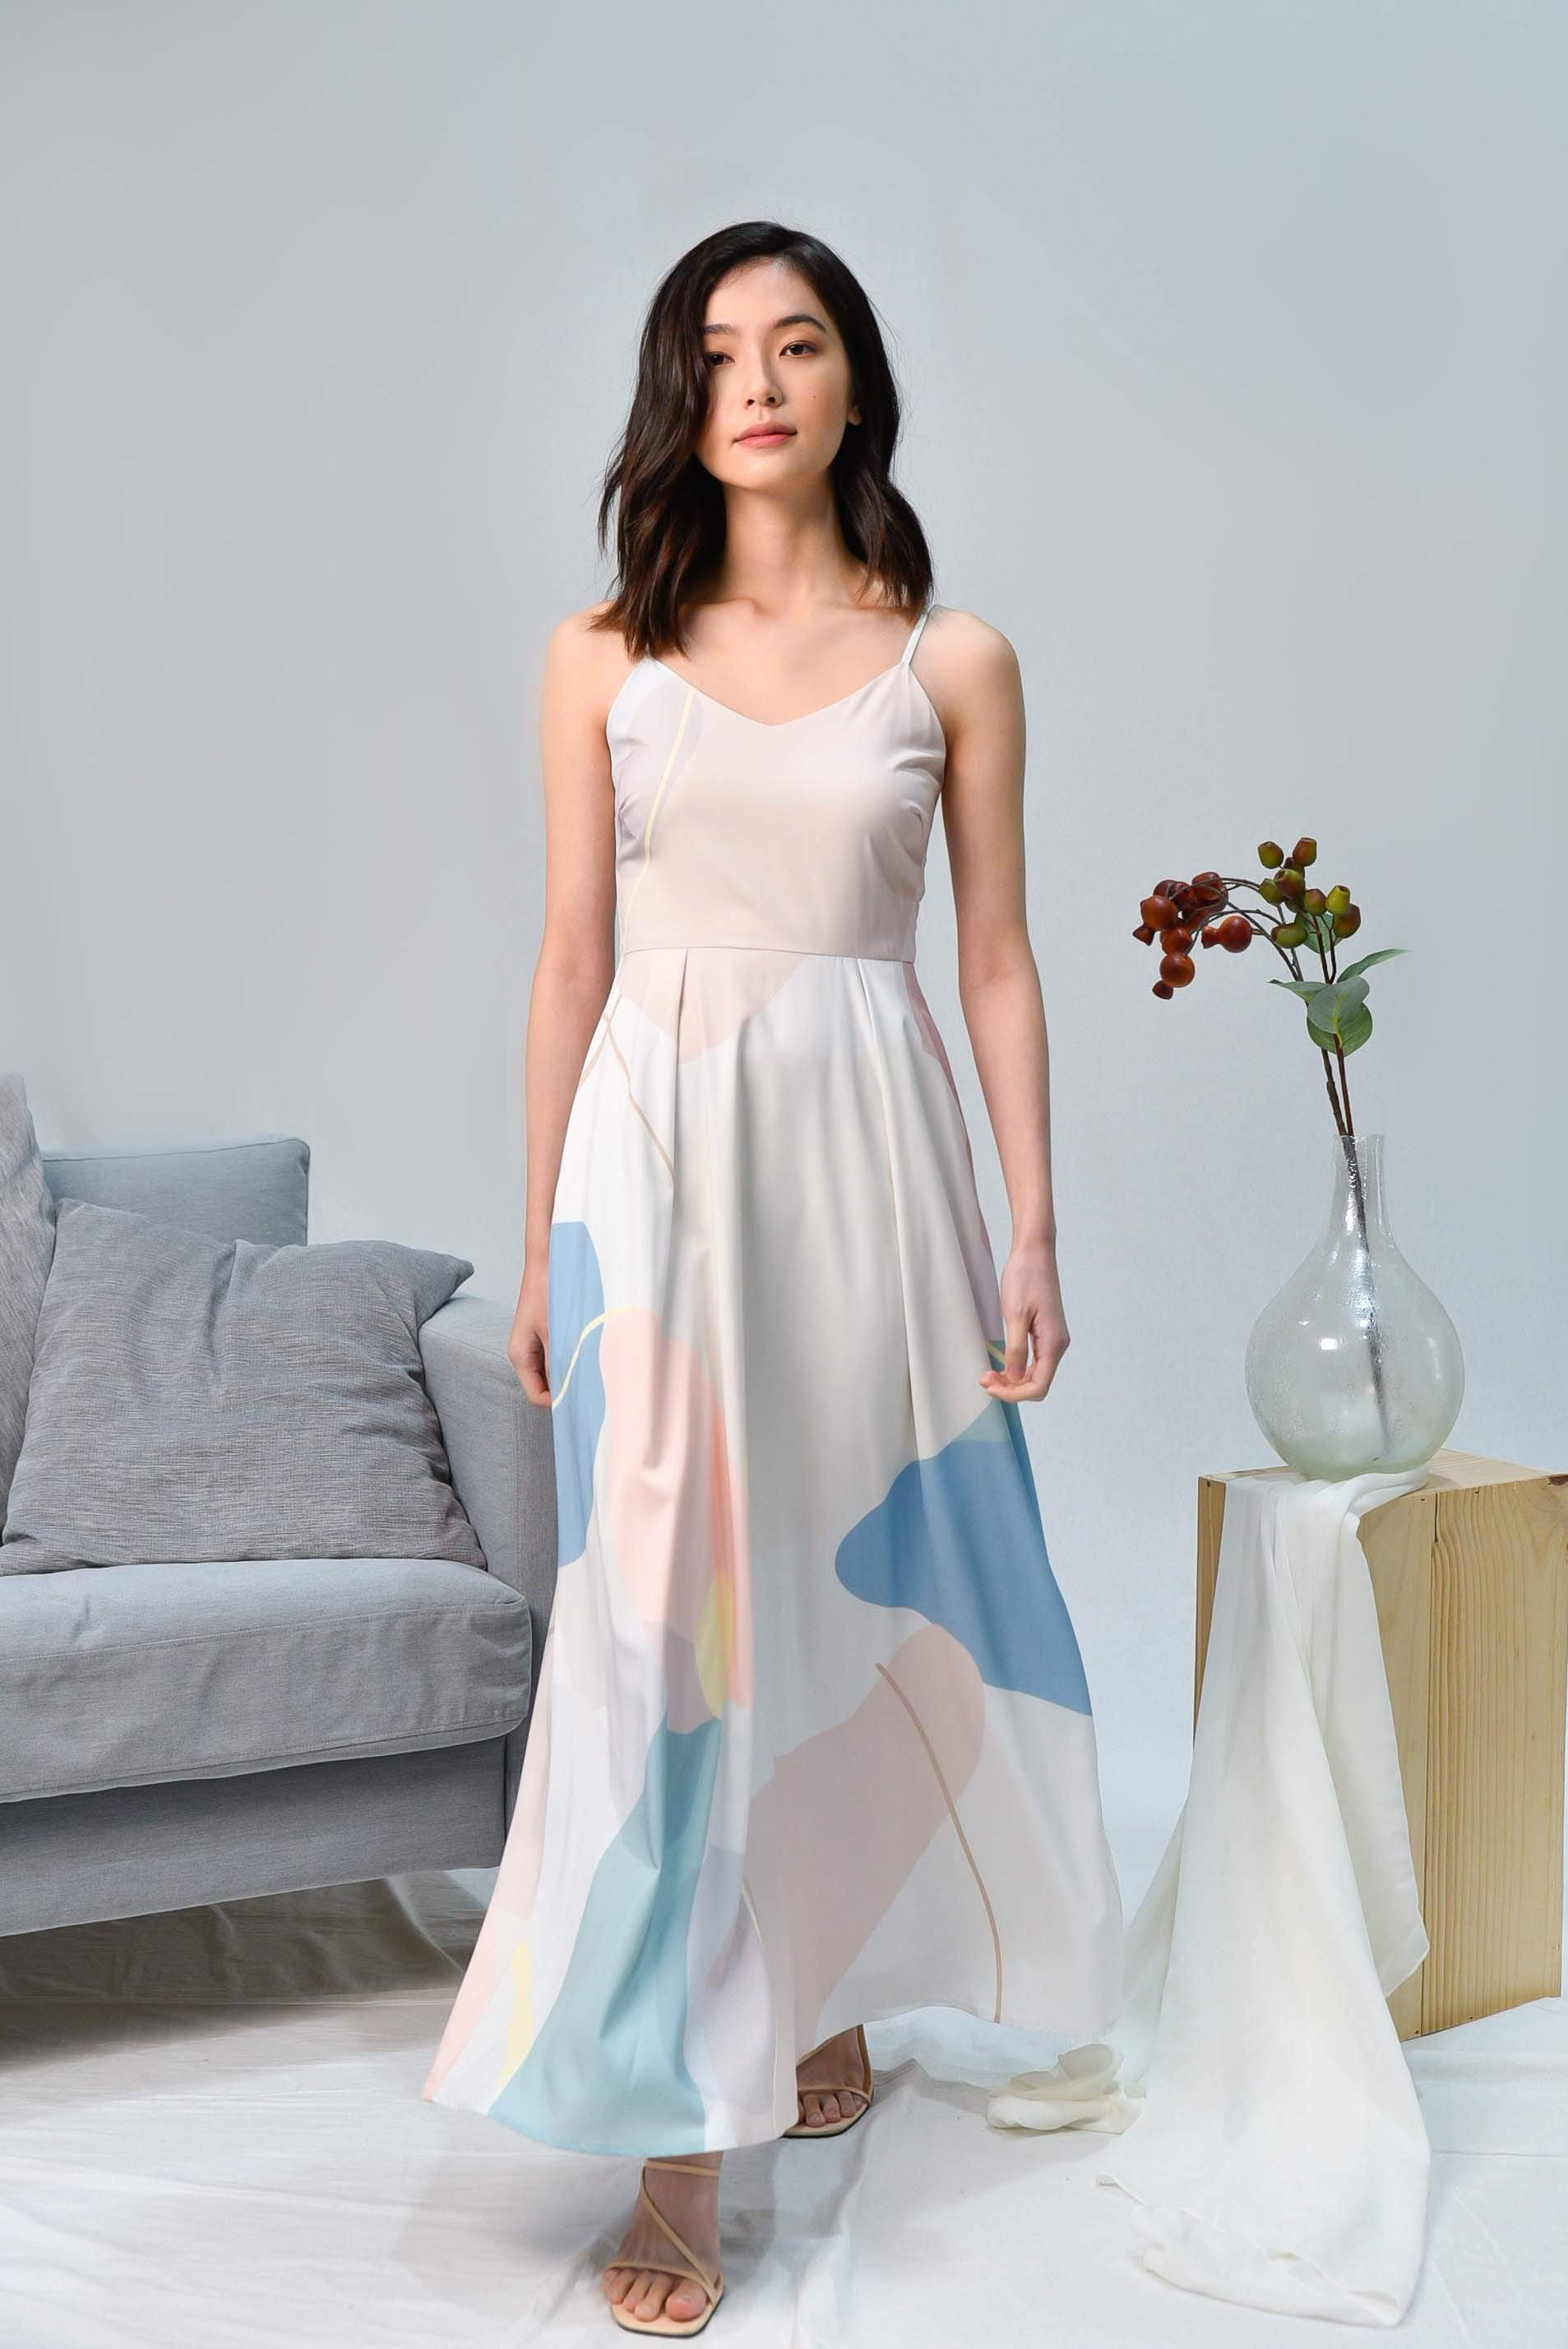 AWE Dresses PADDLE POP MAXI DRESS